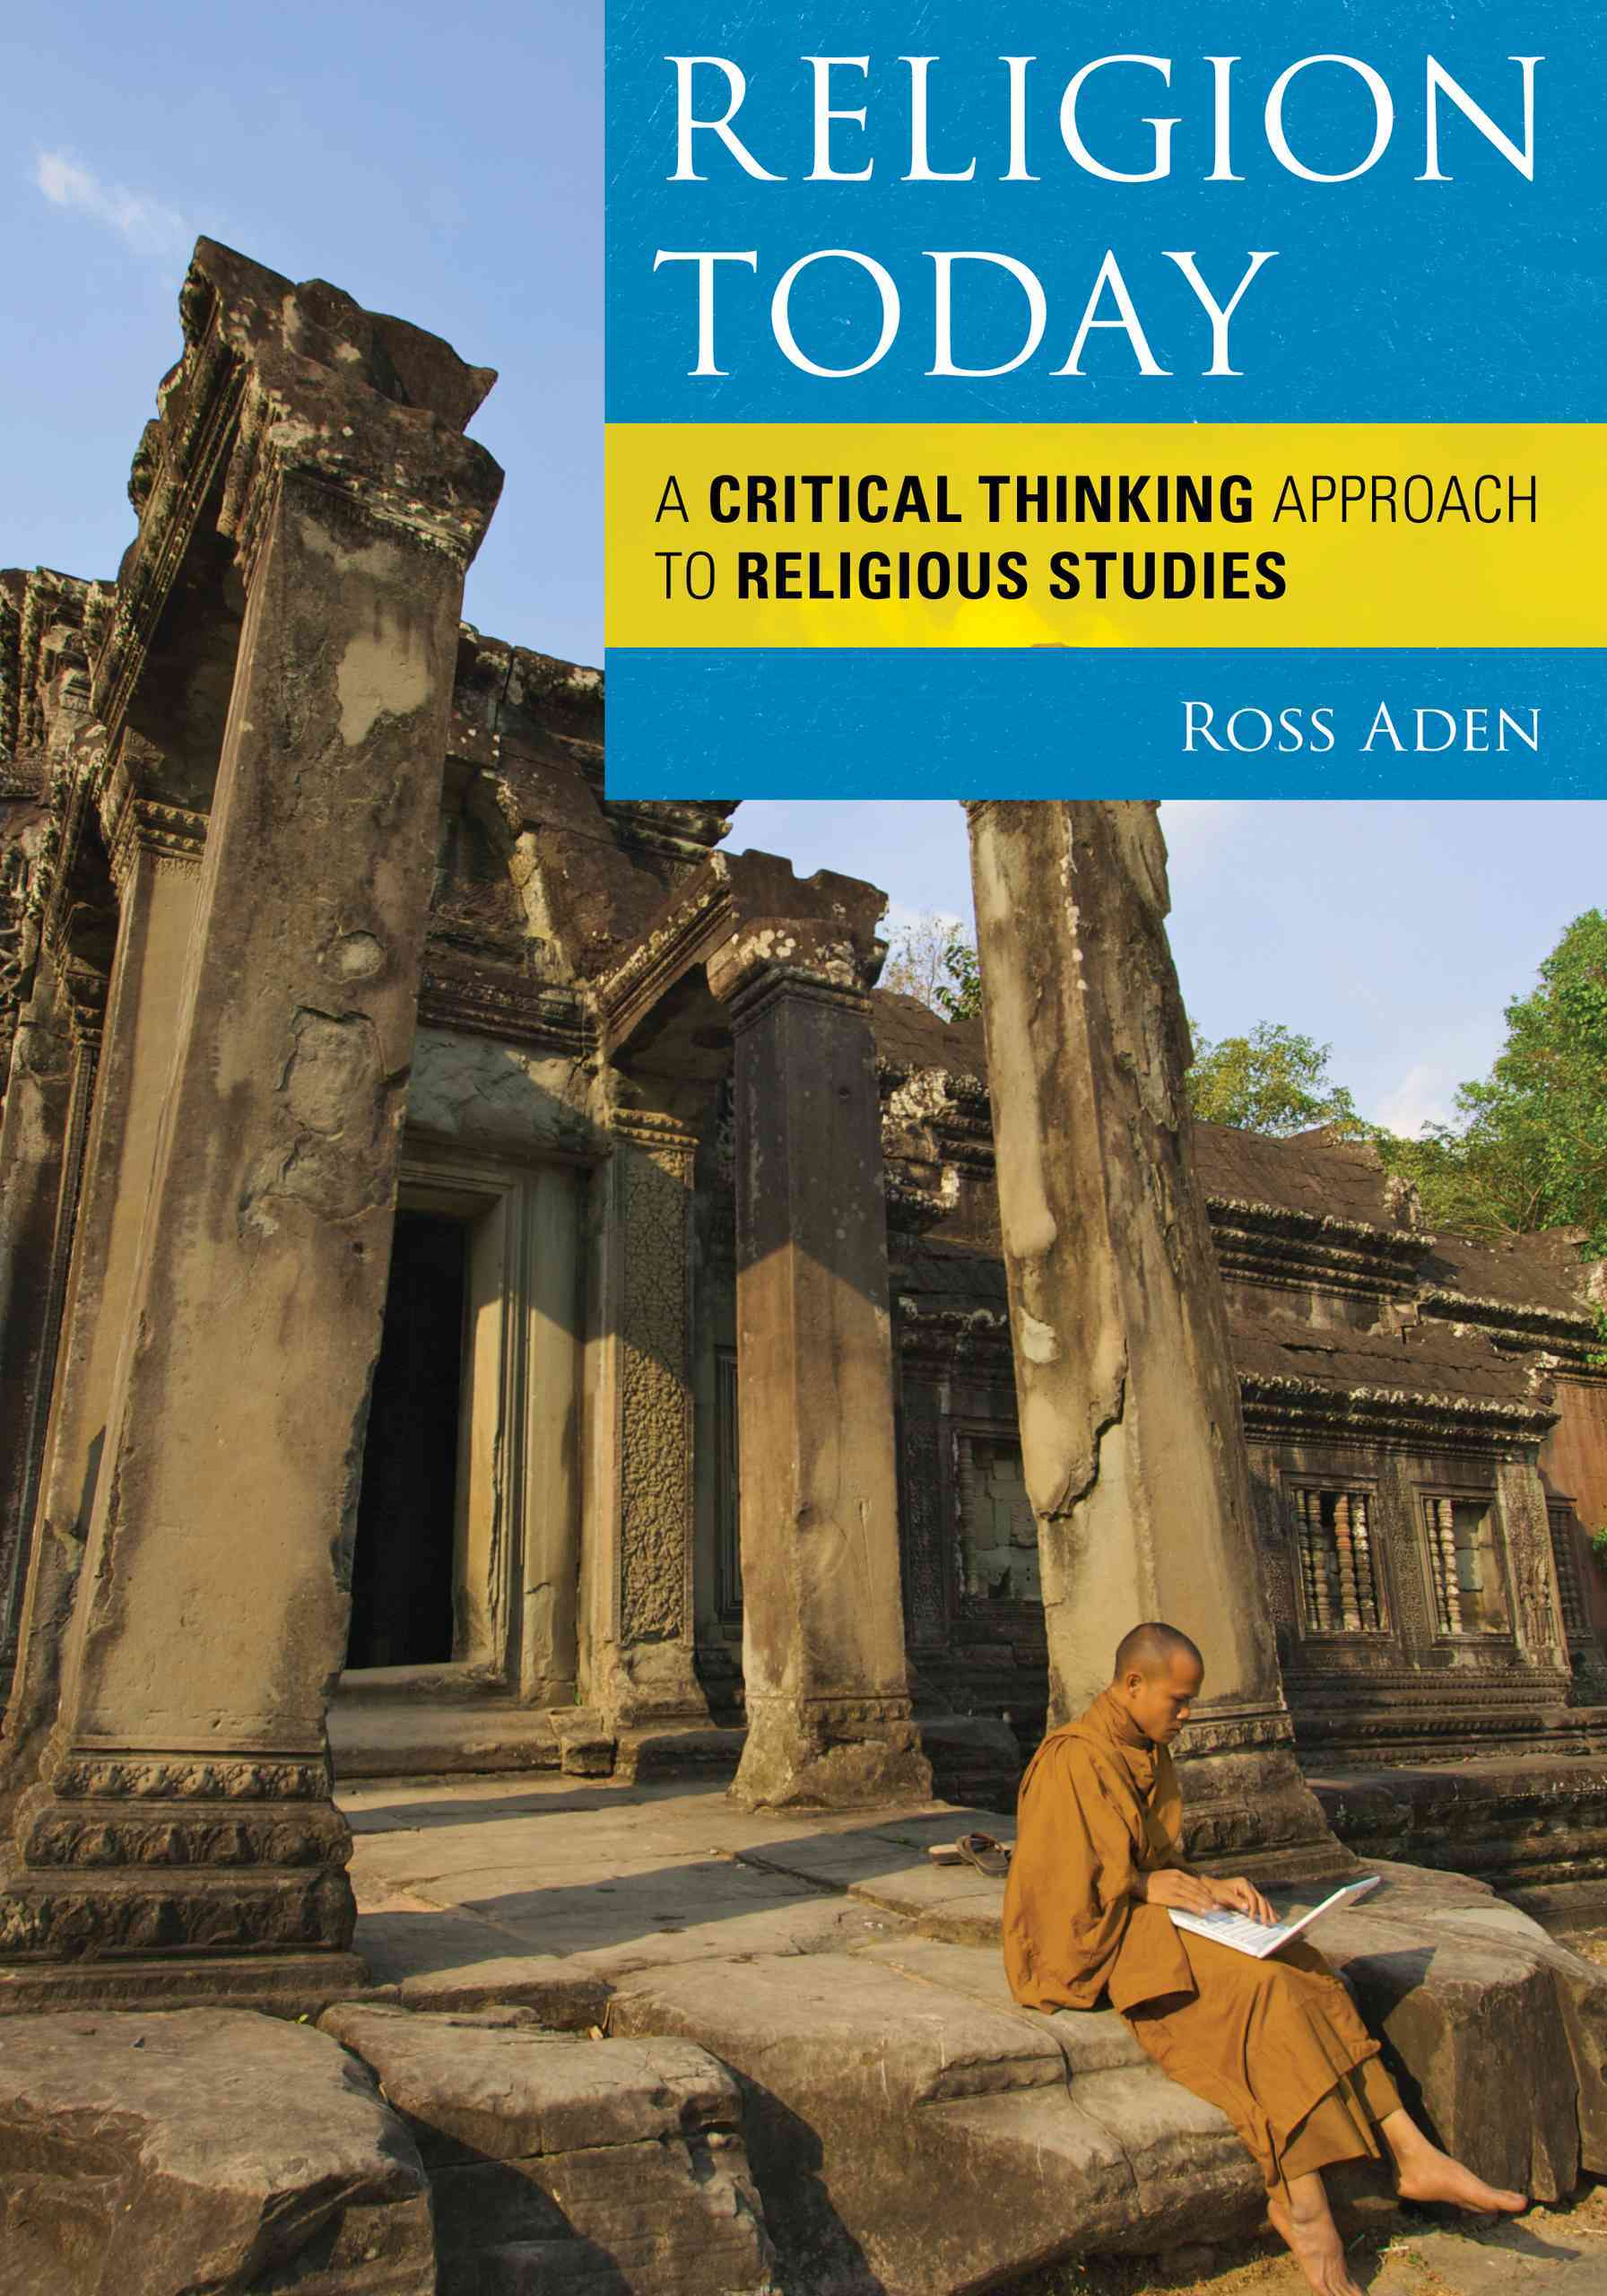 Religion Today: A Critical Thinking Approach to Religious Studies (Paperback)